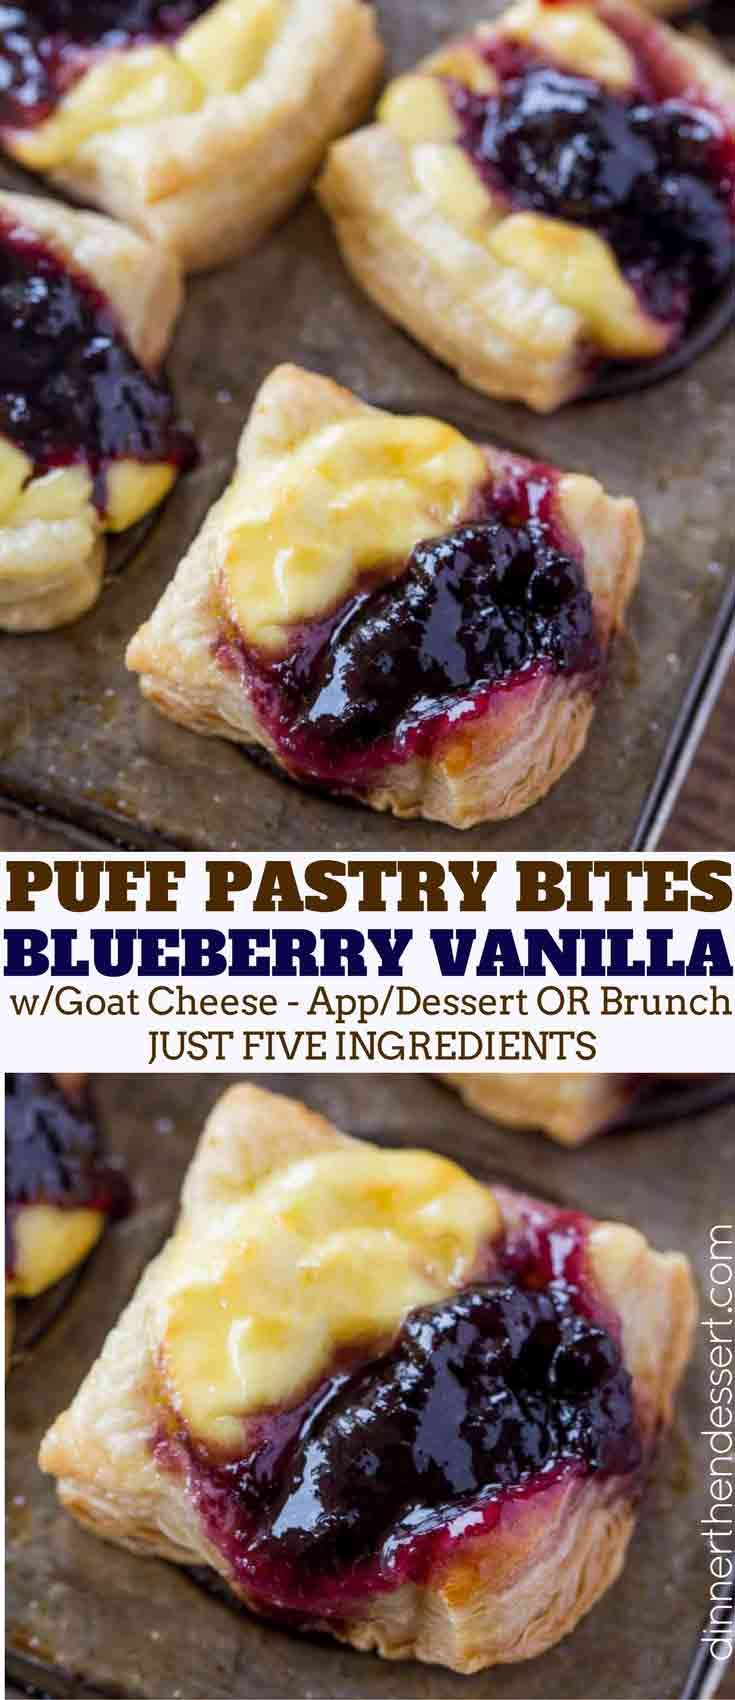 Blueberry Vanilla Goat Cheese Pastry Bites with just five ingredients are the easiest appetizers you'll ever serve your guests. Perfect for the holidays!